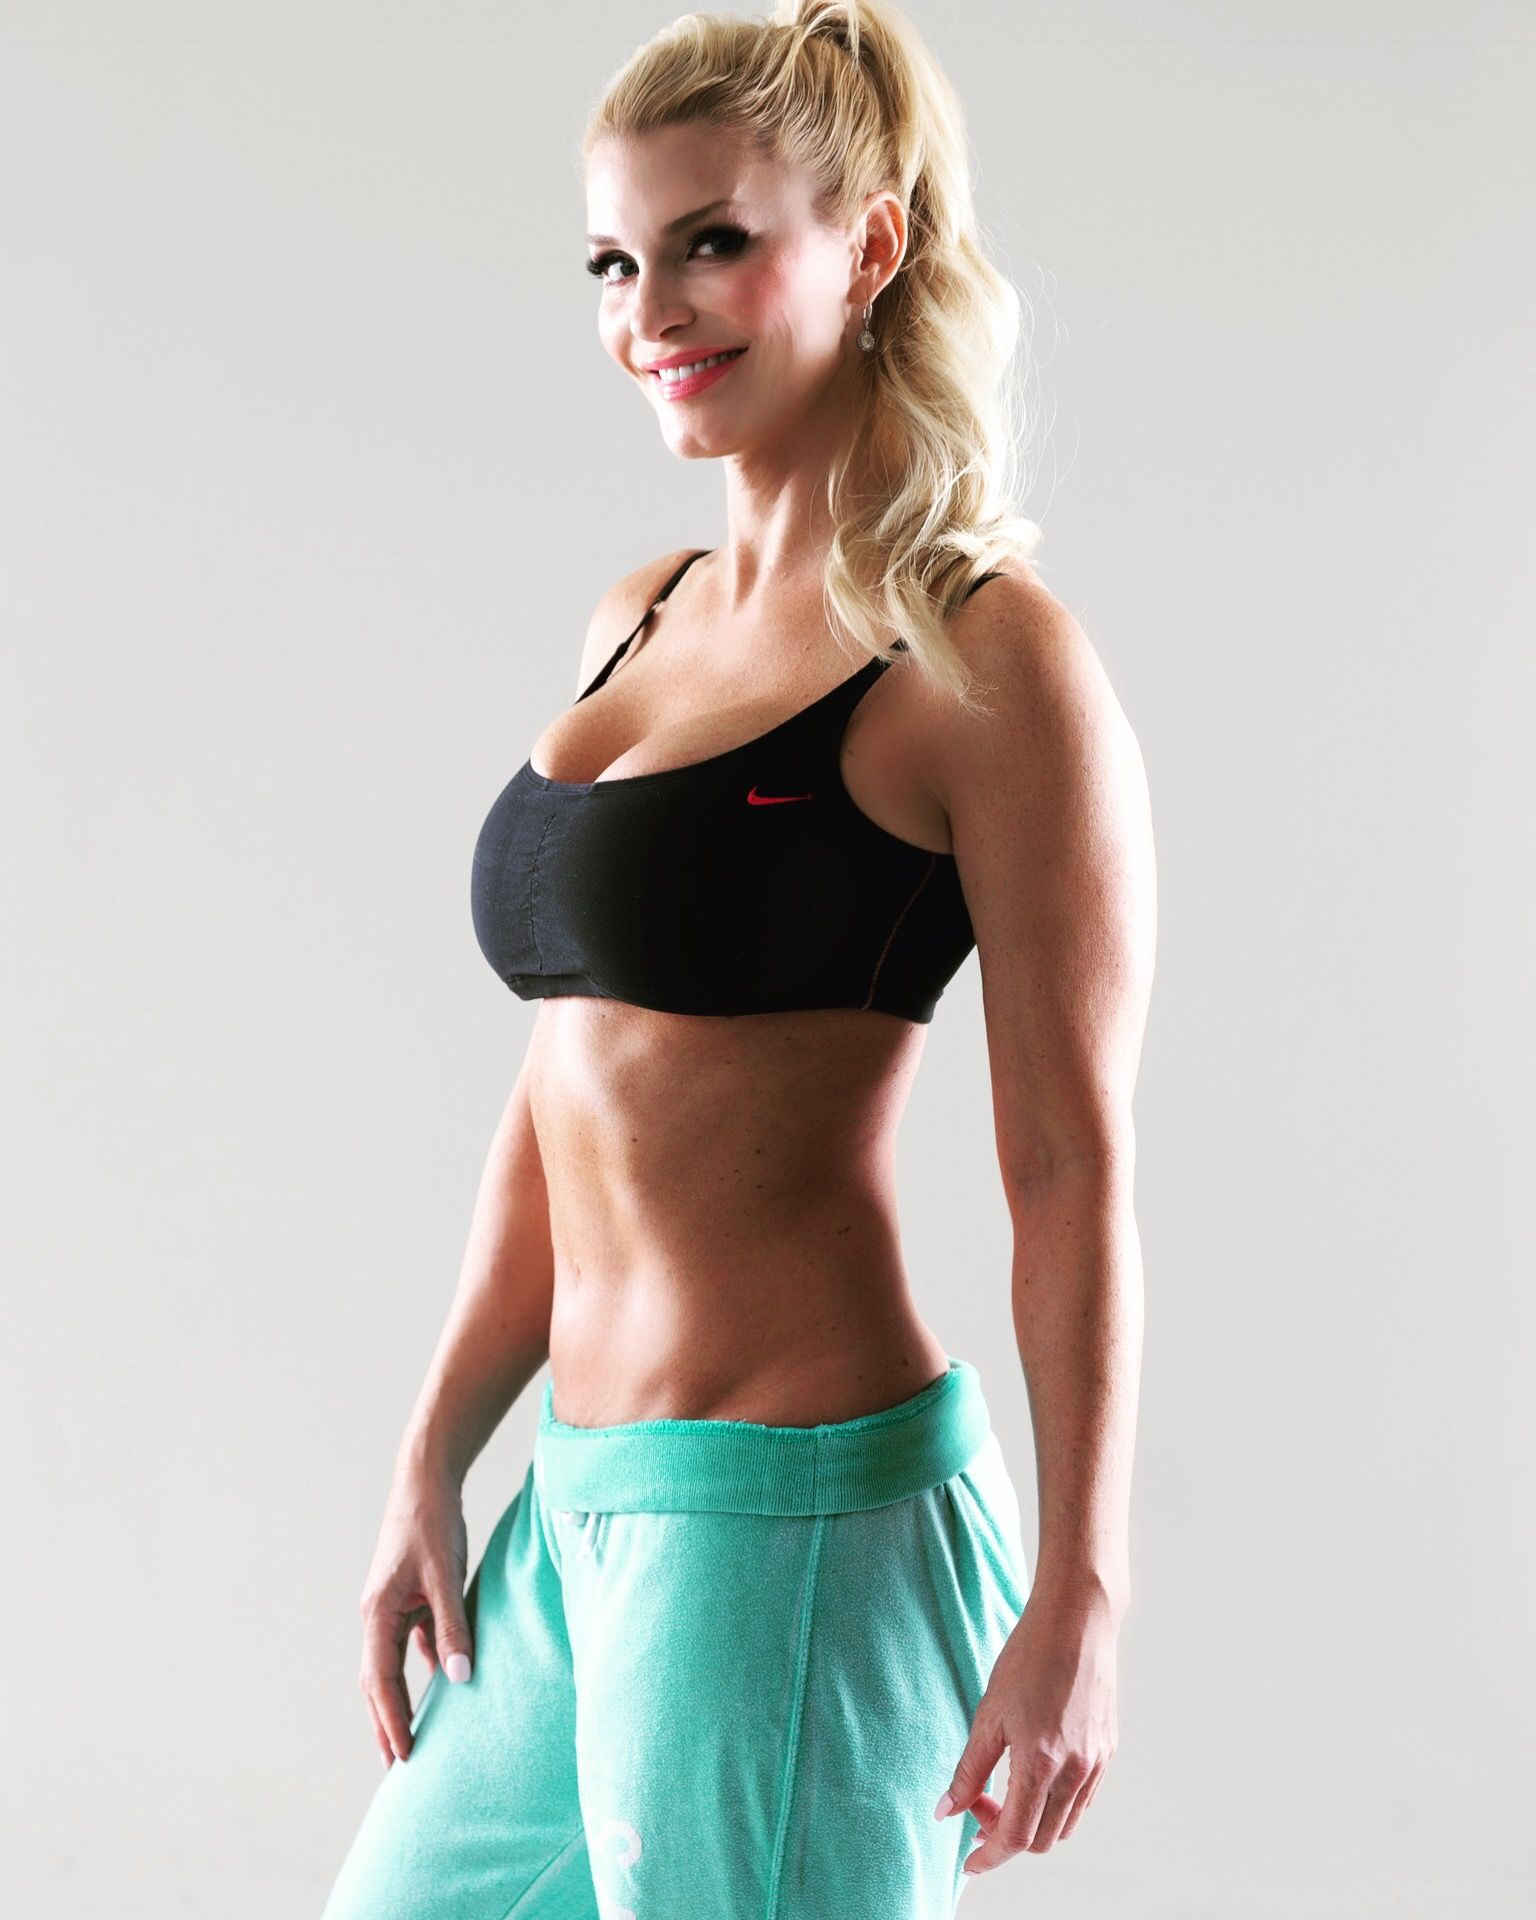 45 year old fitness model